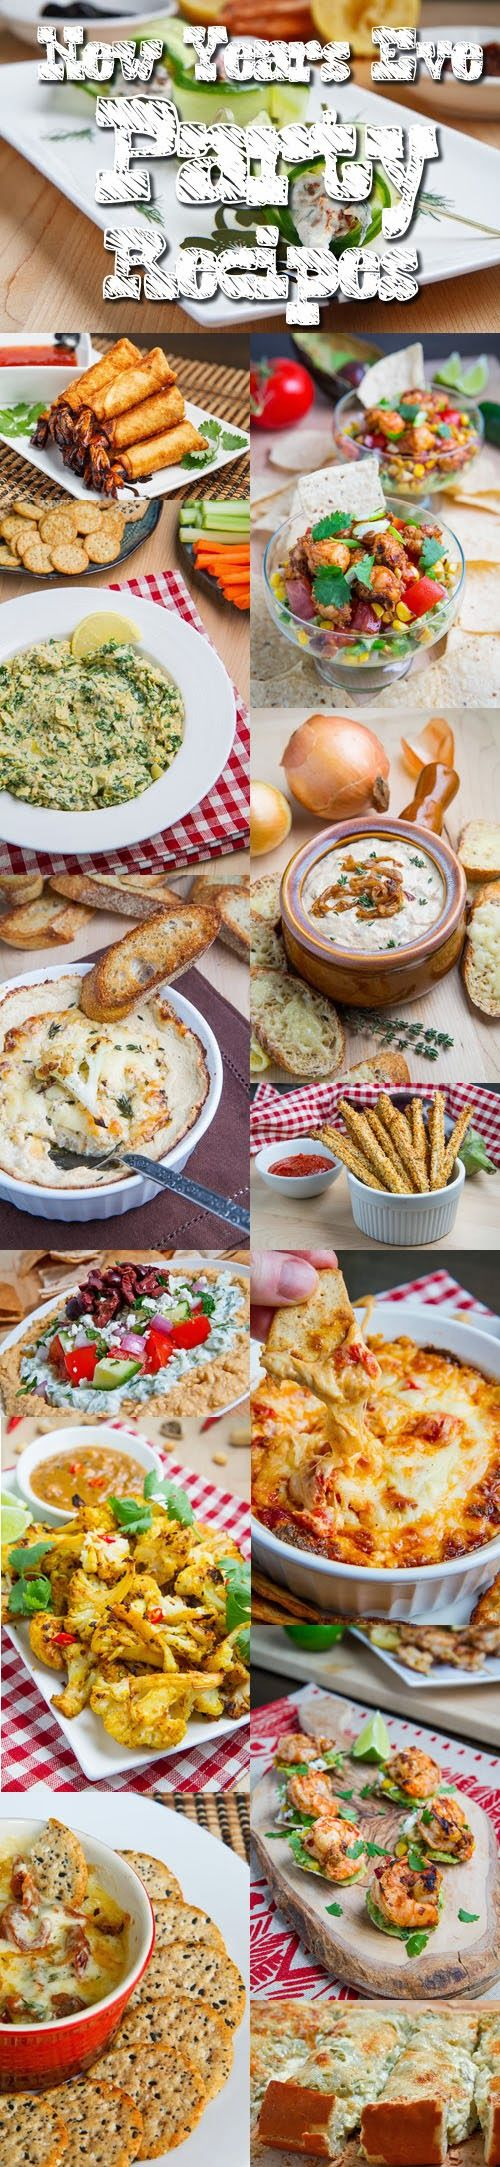 78 images about new years eve party appetizers on for Appetizer ideas for new years eve party